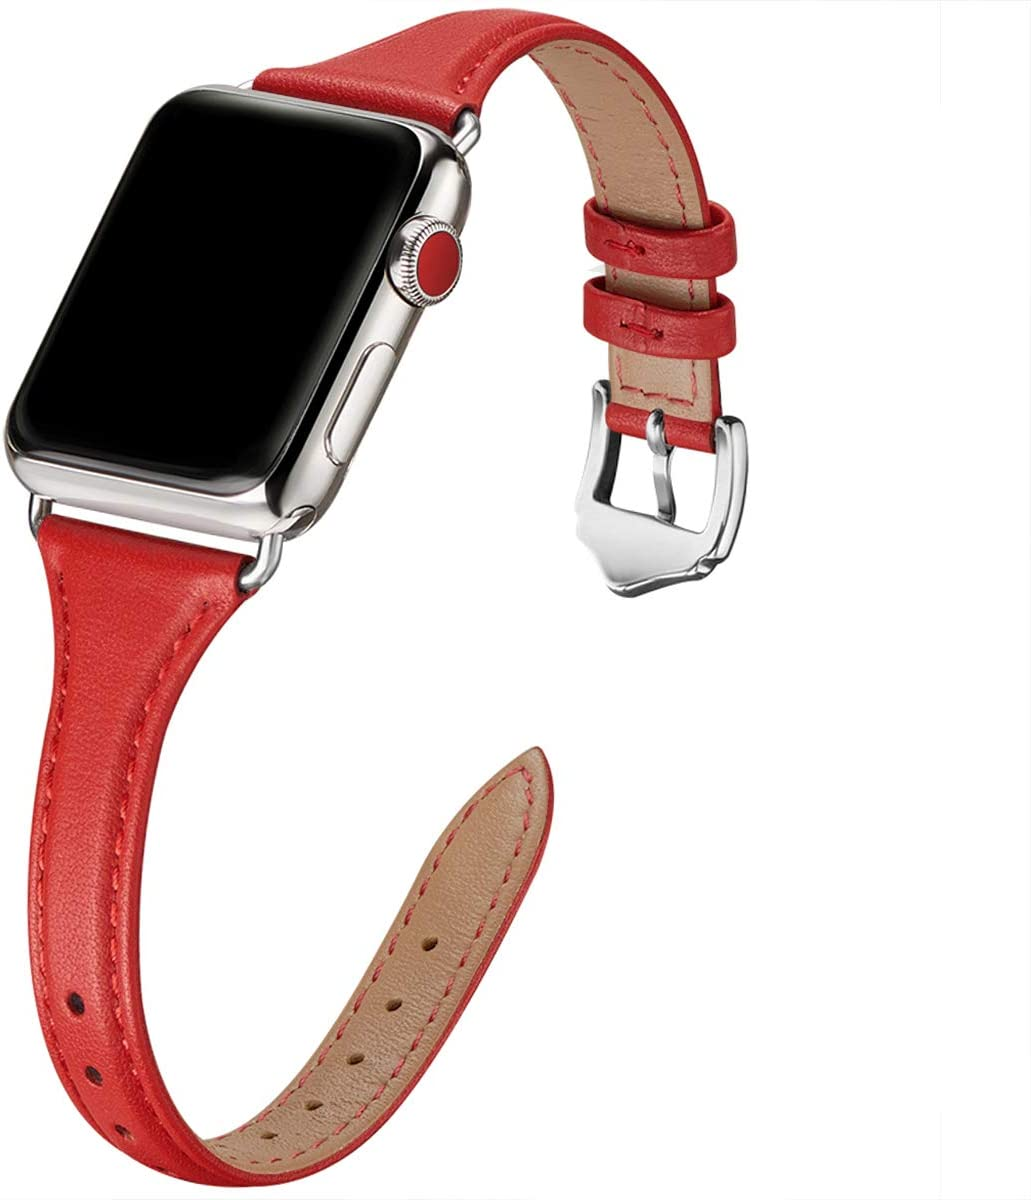 WFEAGL Leather Bands Compatible with Apple Watch 38mm 40mm 42mm 44mm, Top Grain Leather Band Slim & Thin Replacement Wristband for iWatch SE & Series 6/5/4/3/2/1(Red Band+Silver Adapter, 38mm 40mm)